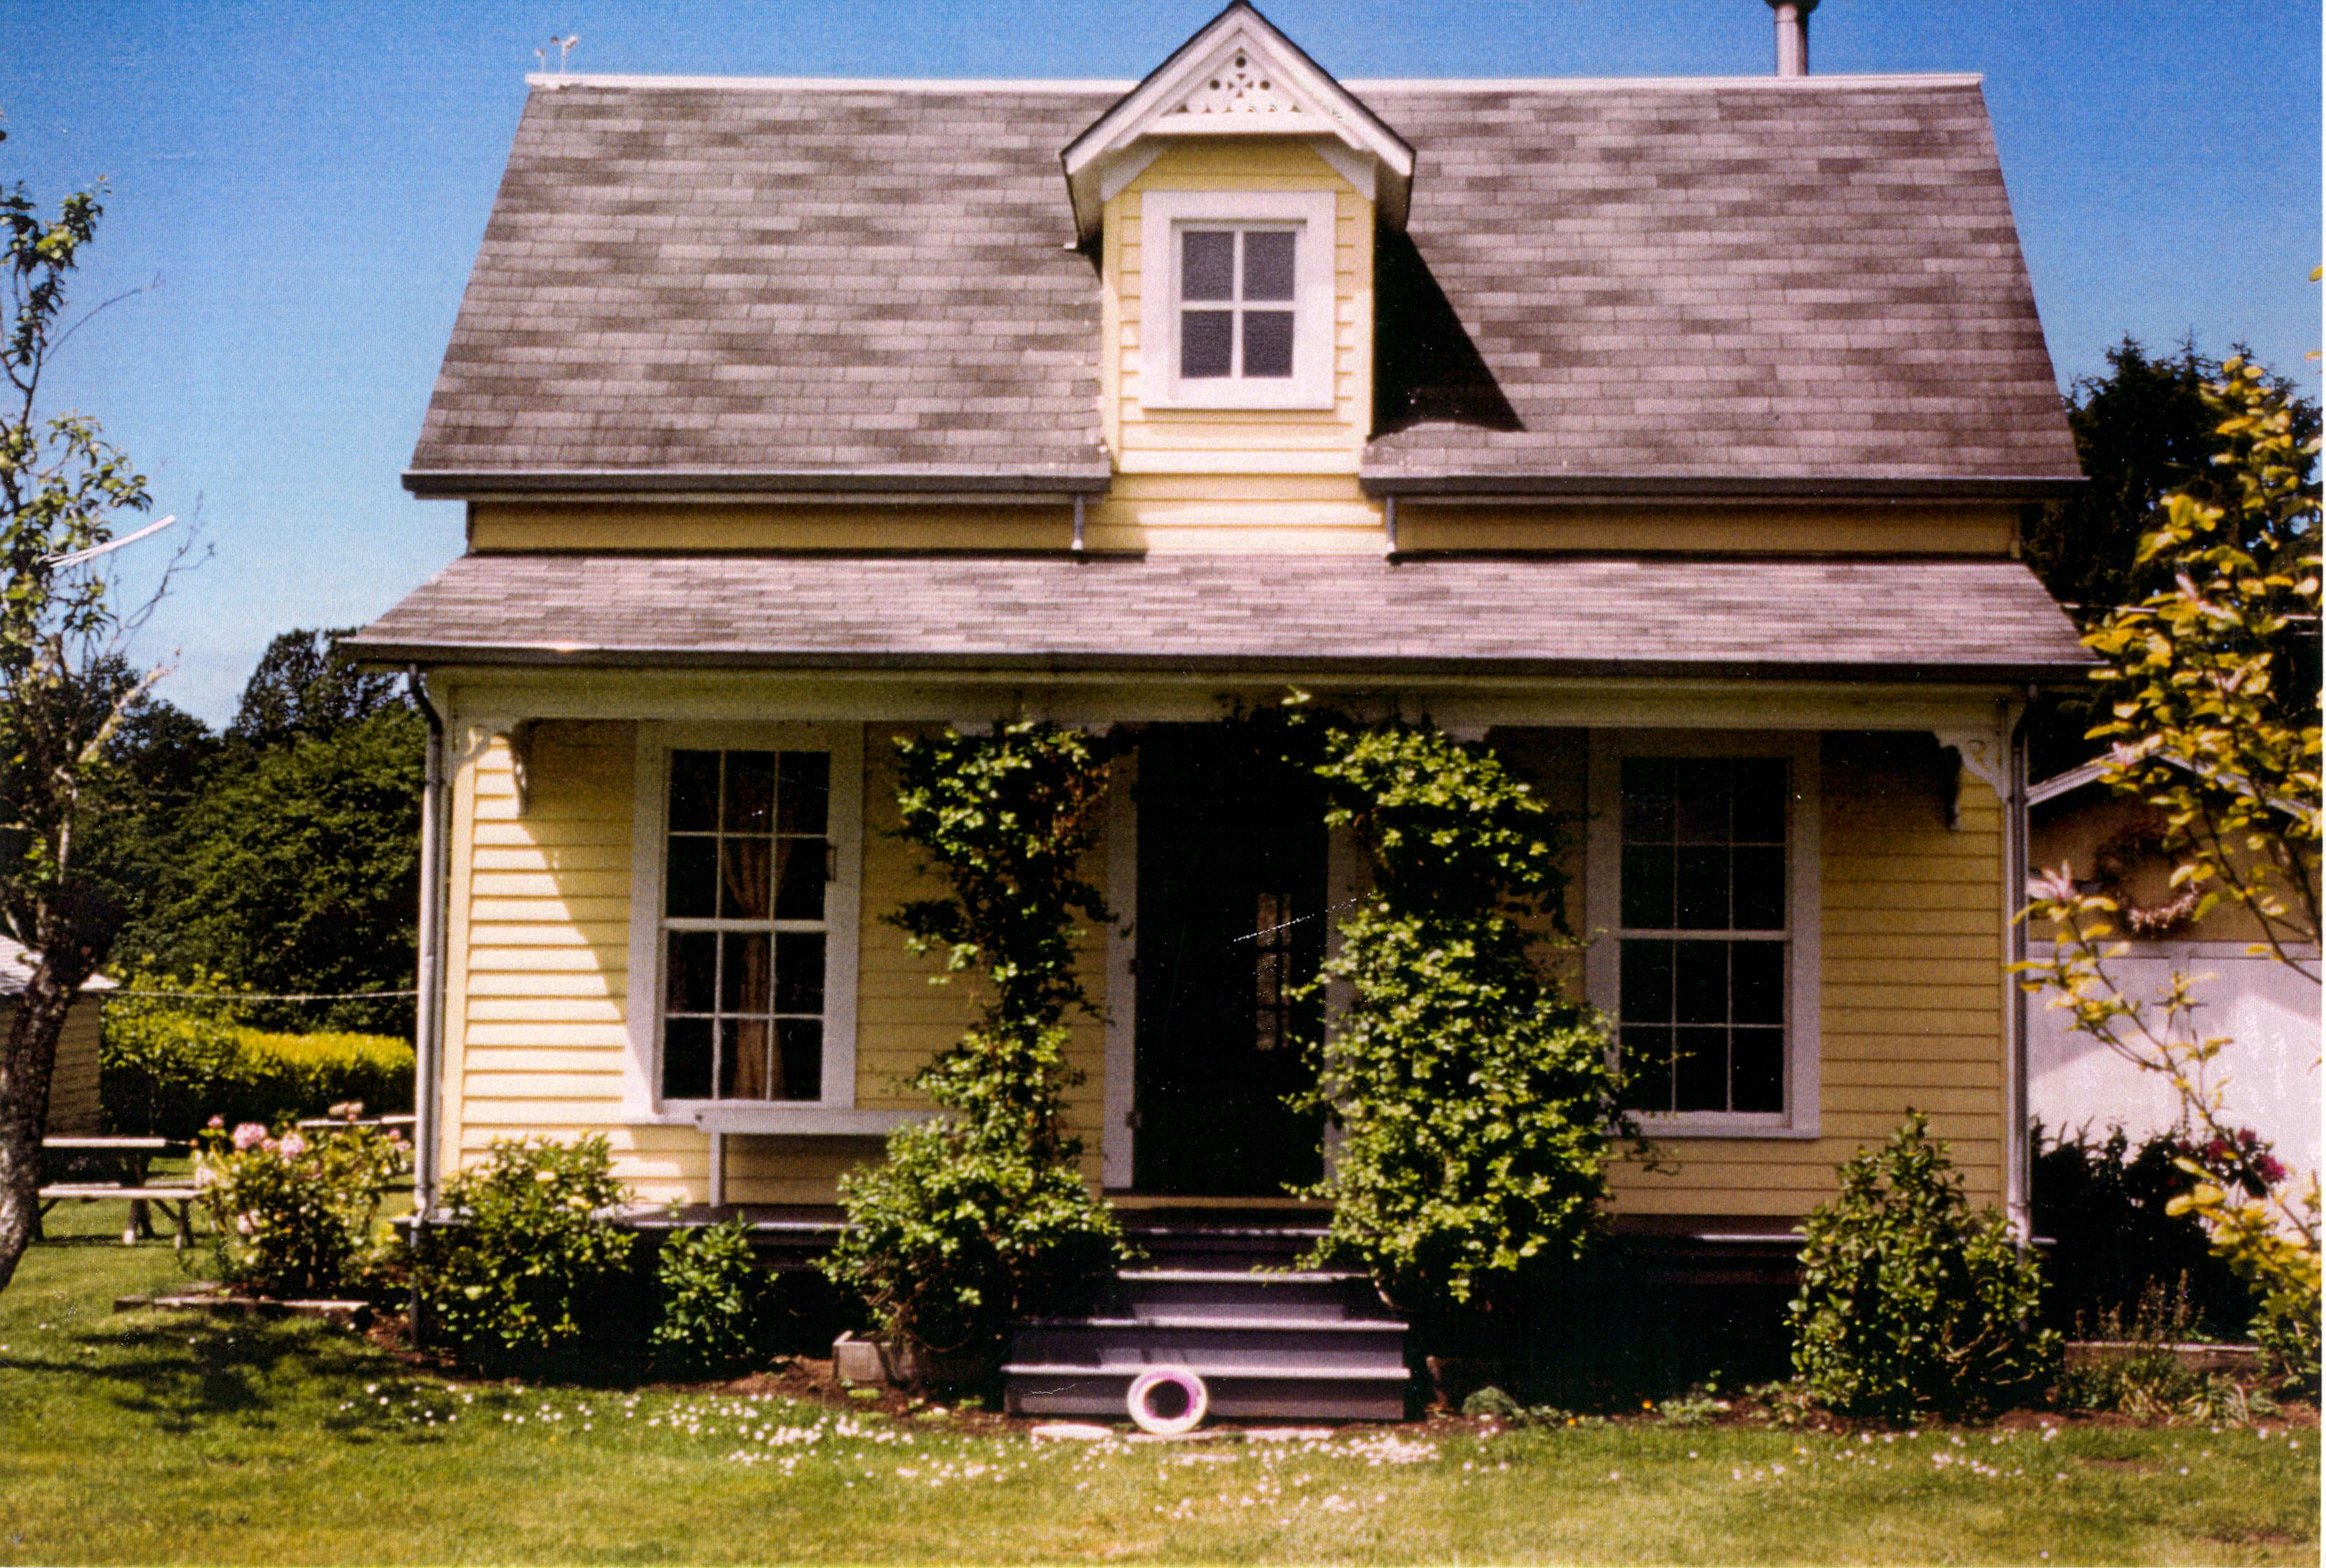 Captain Stream House in color 1990